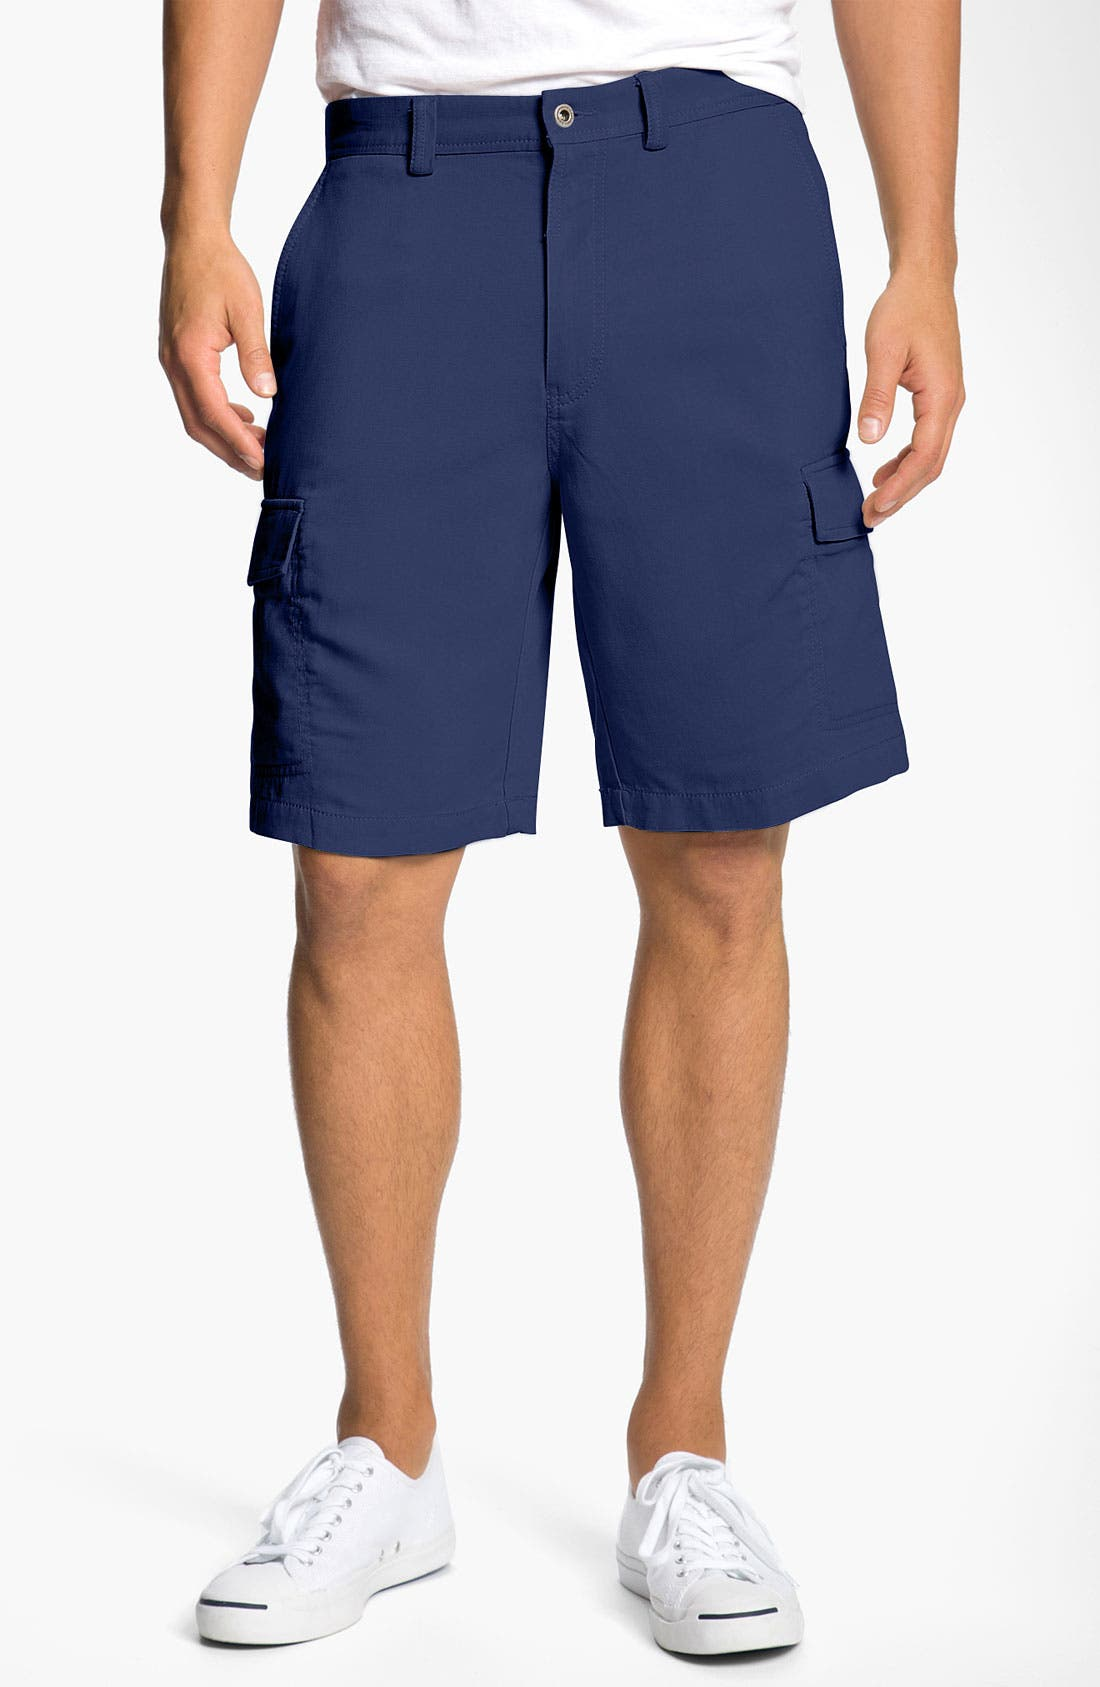 Alternate Image 1 Selected - Tommy Bahama 'Caribbean Cay' Cargo Shorts